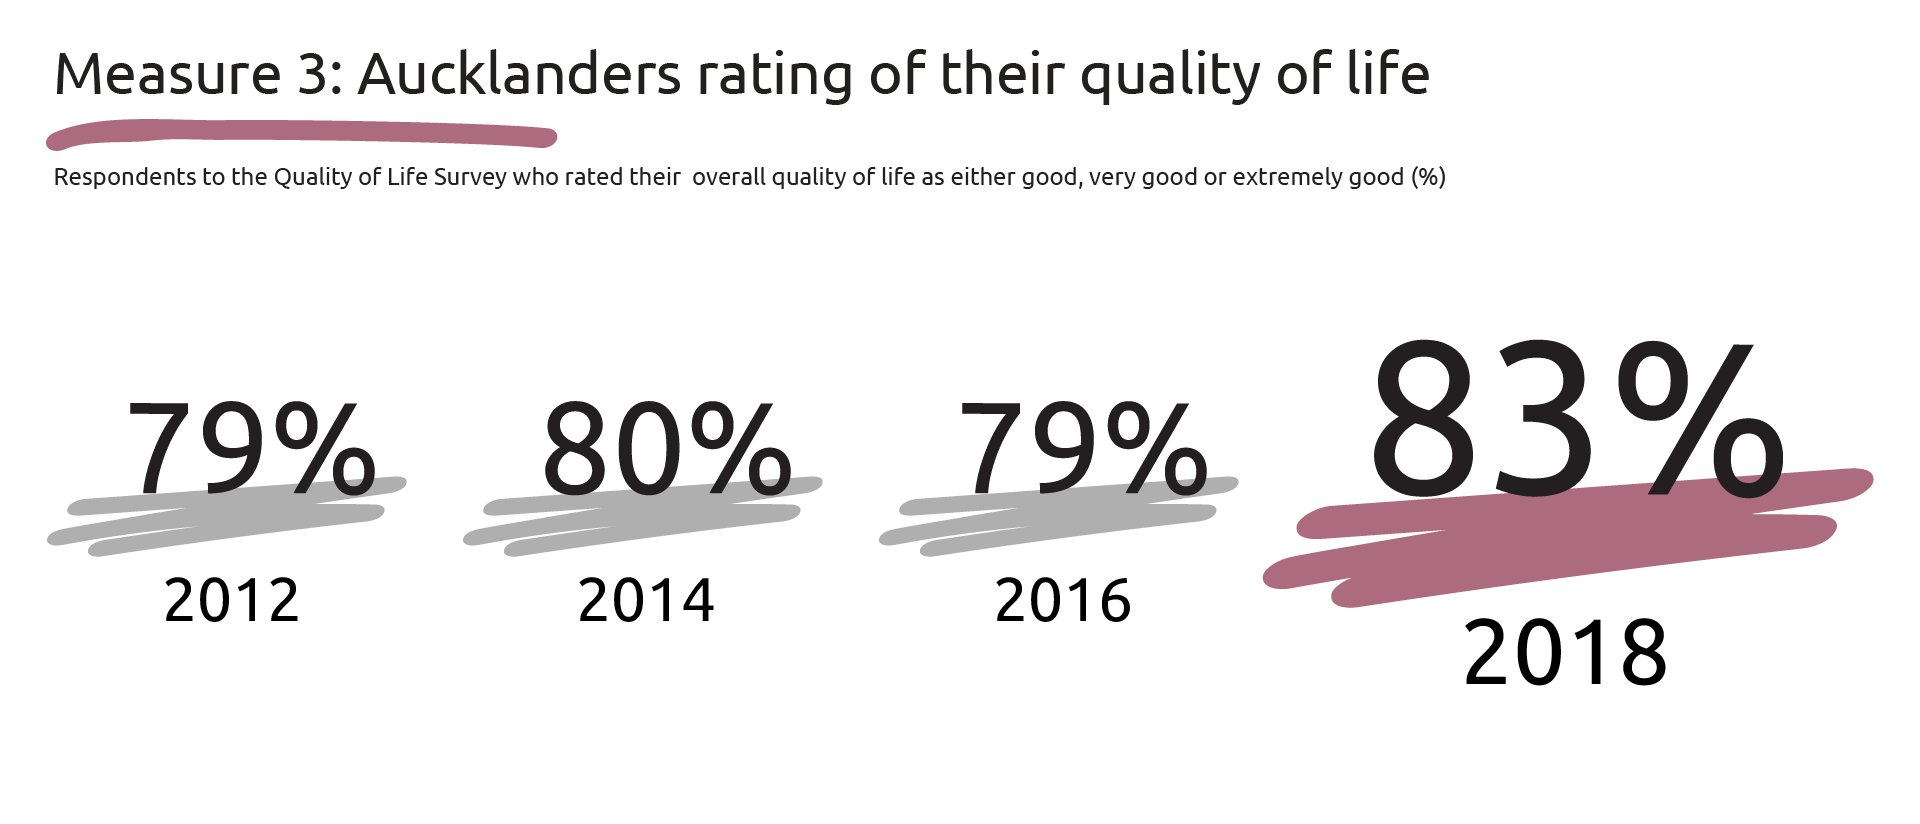 Graphic showing percentages of respondents to the QOL survey who rated their overall quality of life as either good, very good or extremely good: 2012-96 per cent, 2014-97 per cent, 2016-96 per cent and 2018-83 per cent.